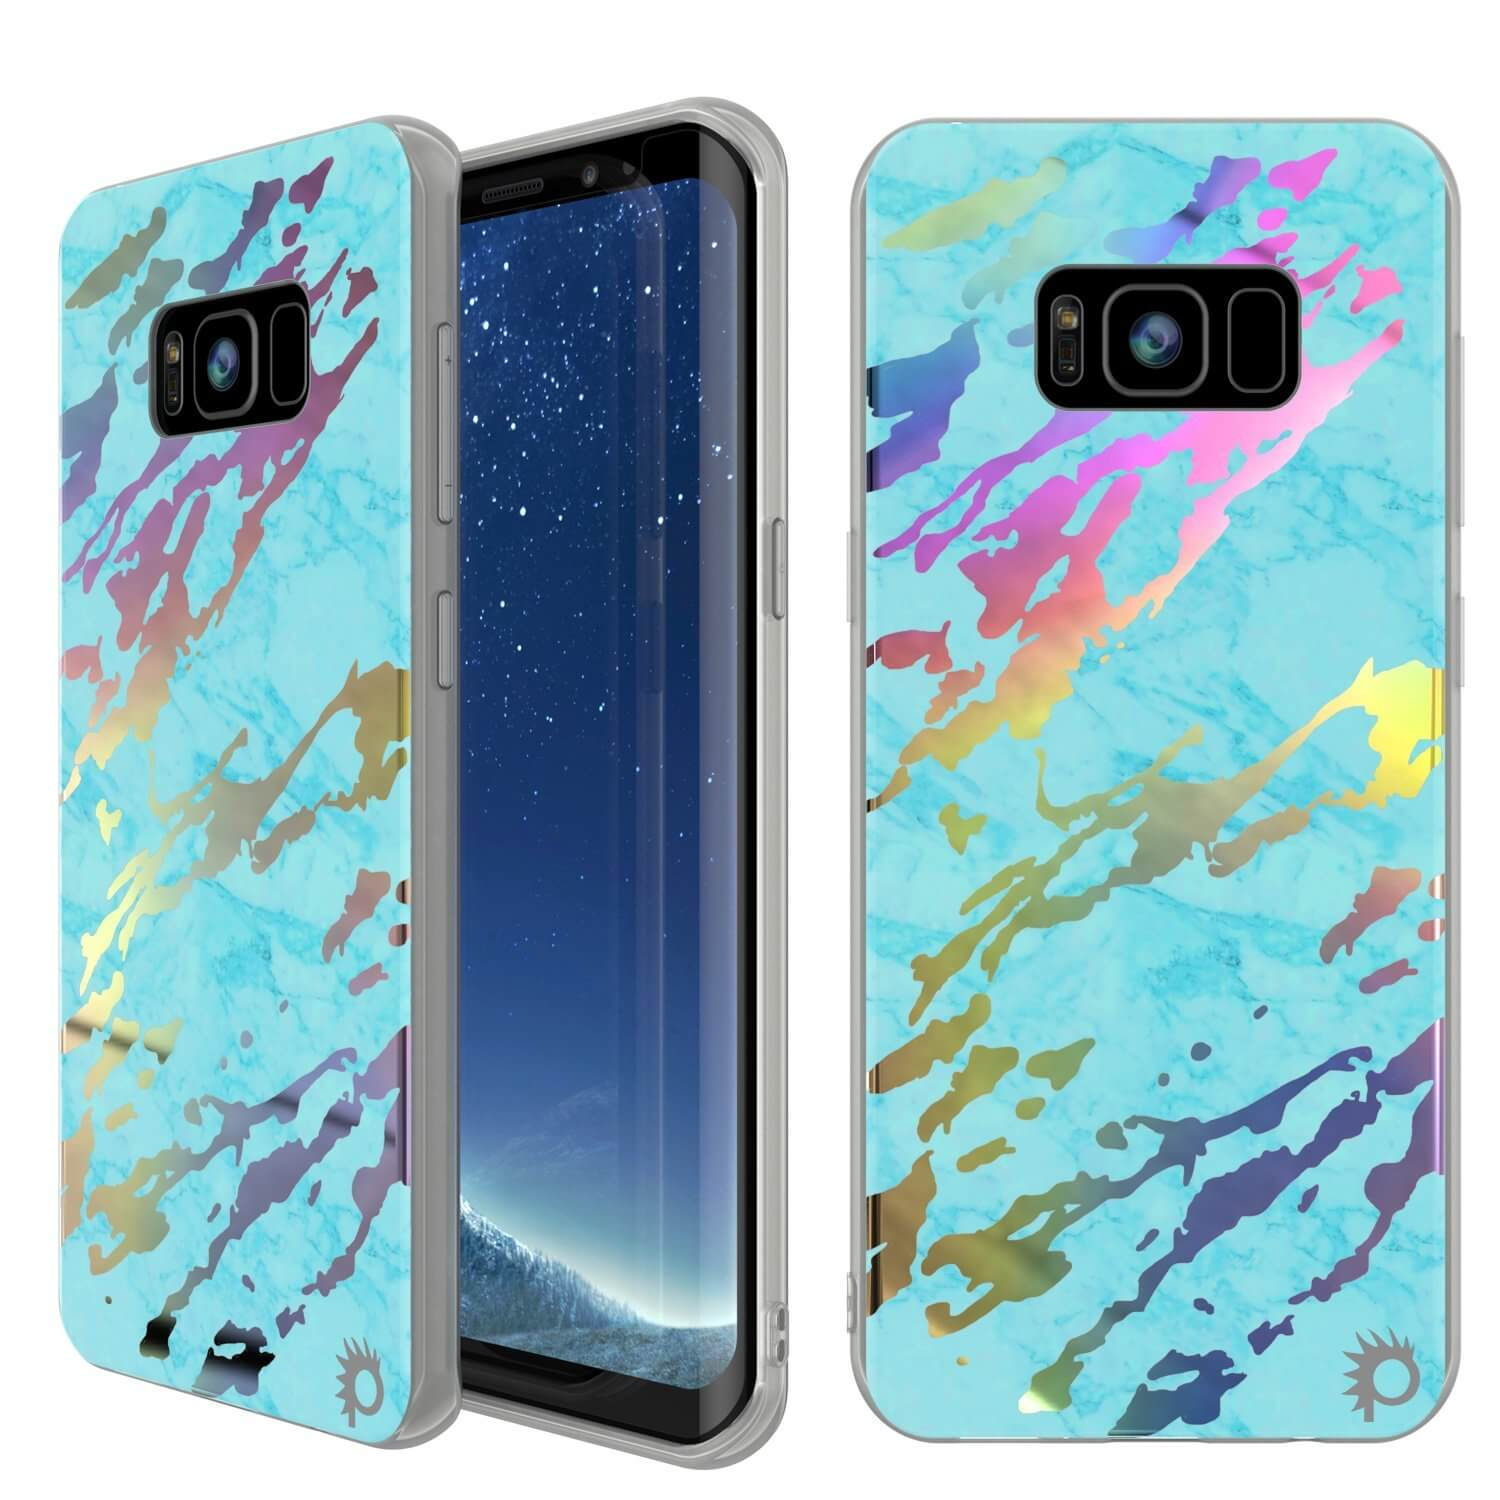 Punkcase Galaxy S8 Marble Case, Protective Full Body Cover W/PunkShield Screen Protector (Teal Onyx)